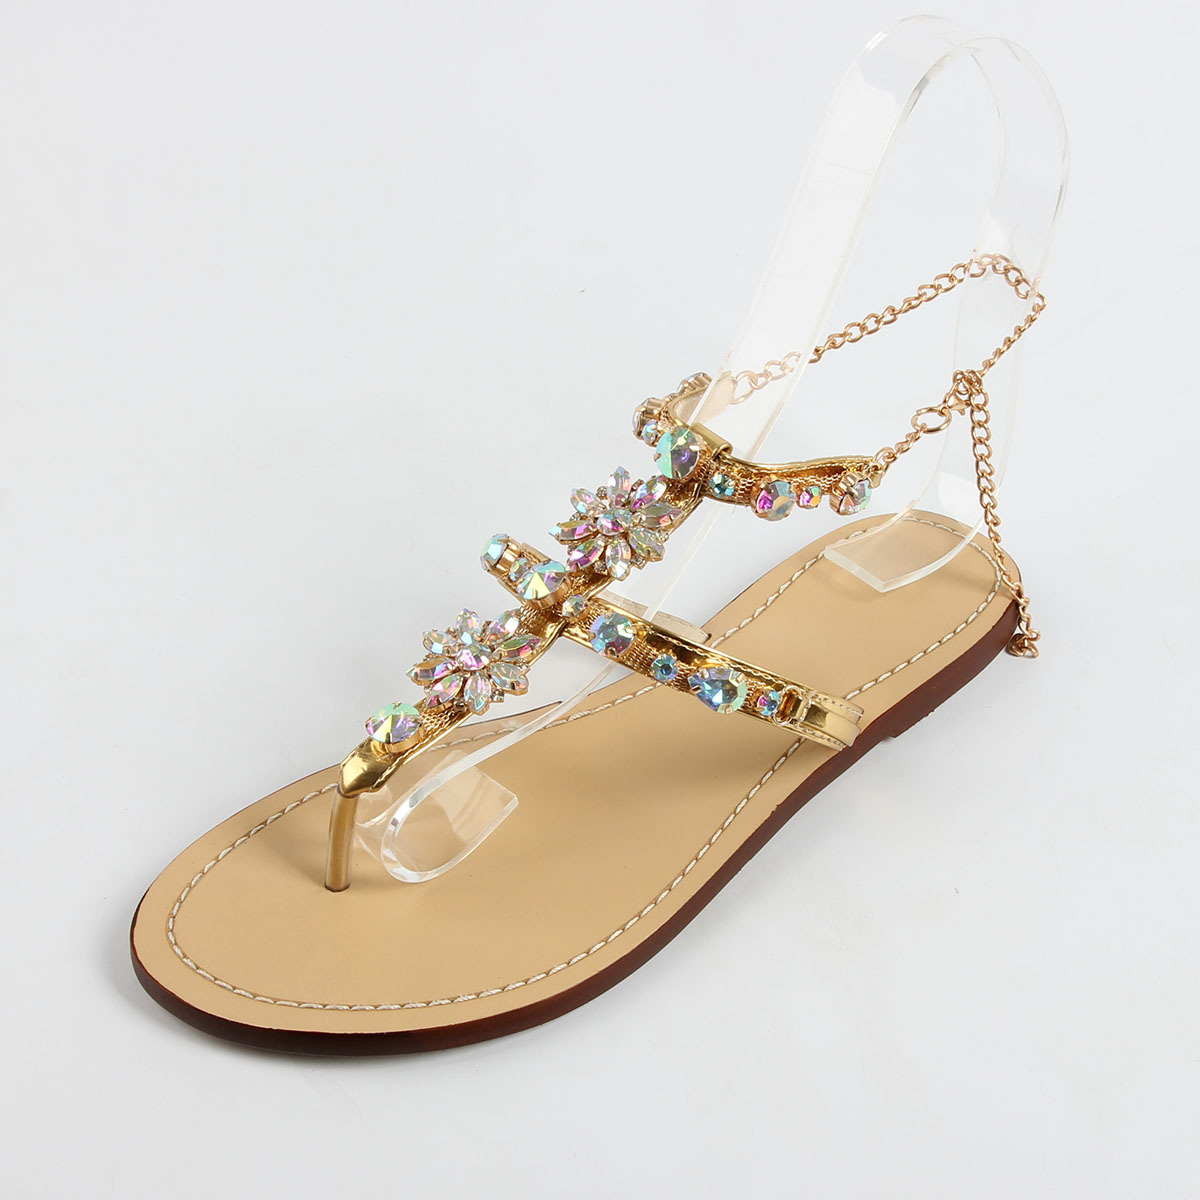 4c14915cf3 Chains Sandals Rhinestones Size Woman Gladiator Chaussure Shoes Flat ...